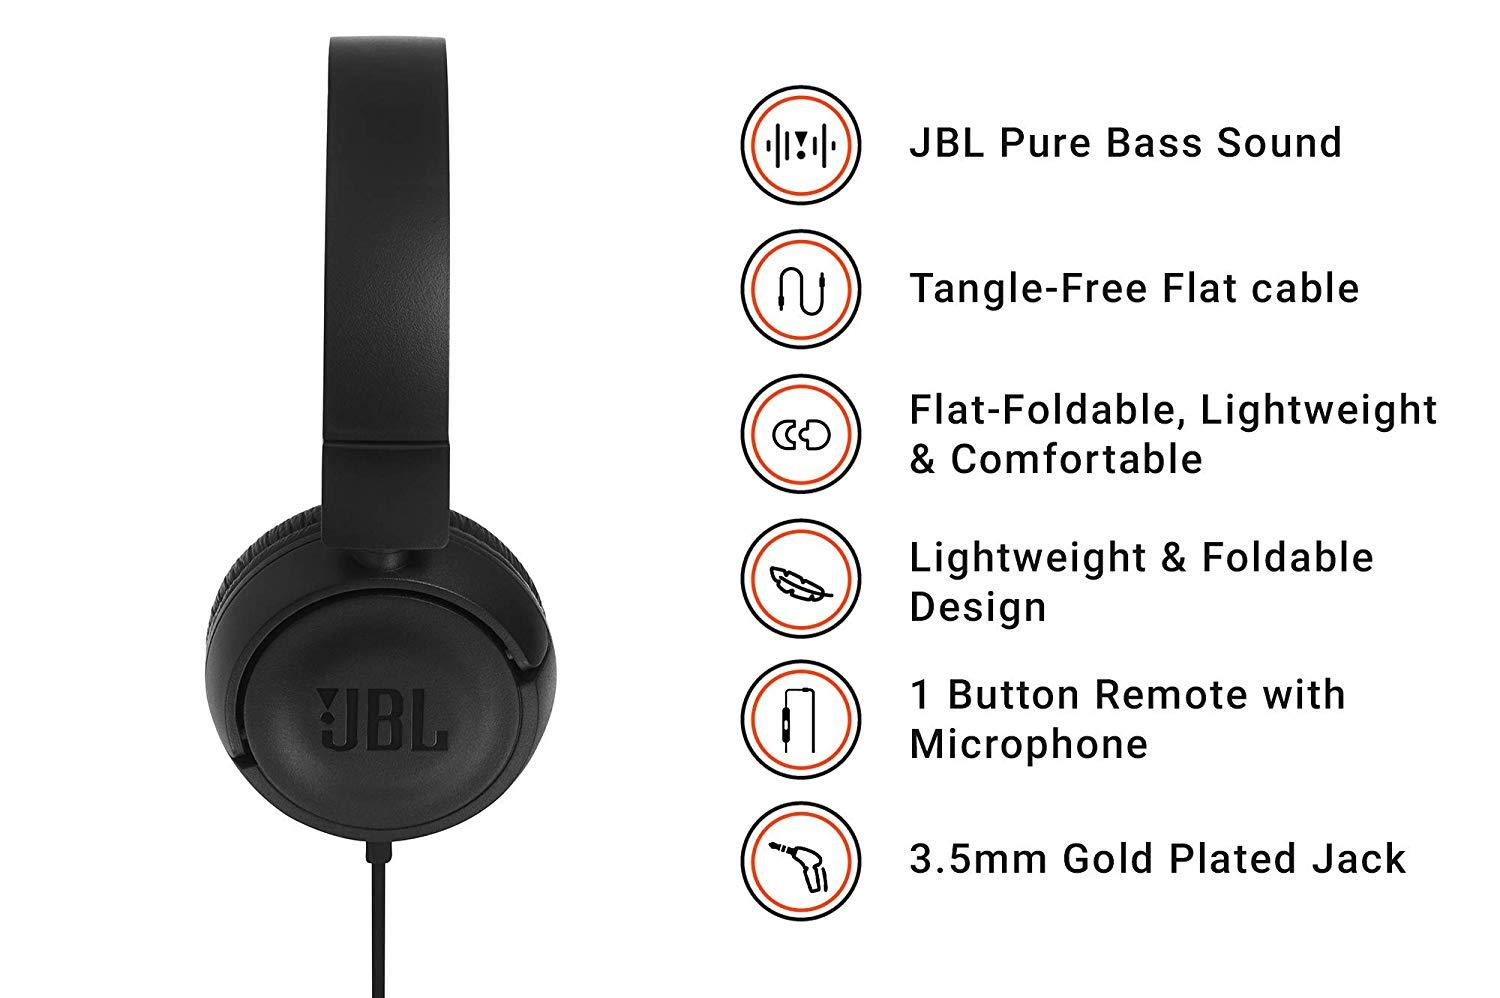 ede70948567 Specifications of JBL T450 On-ear Wired Headphones (Black)